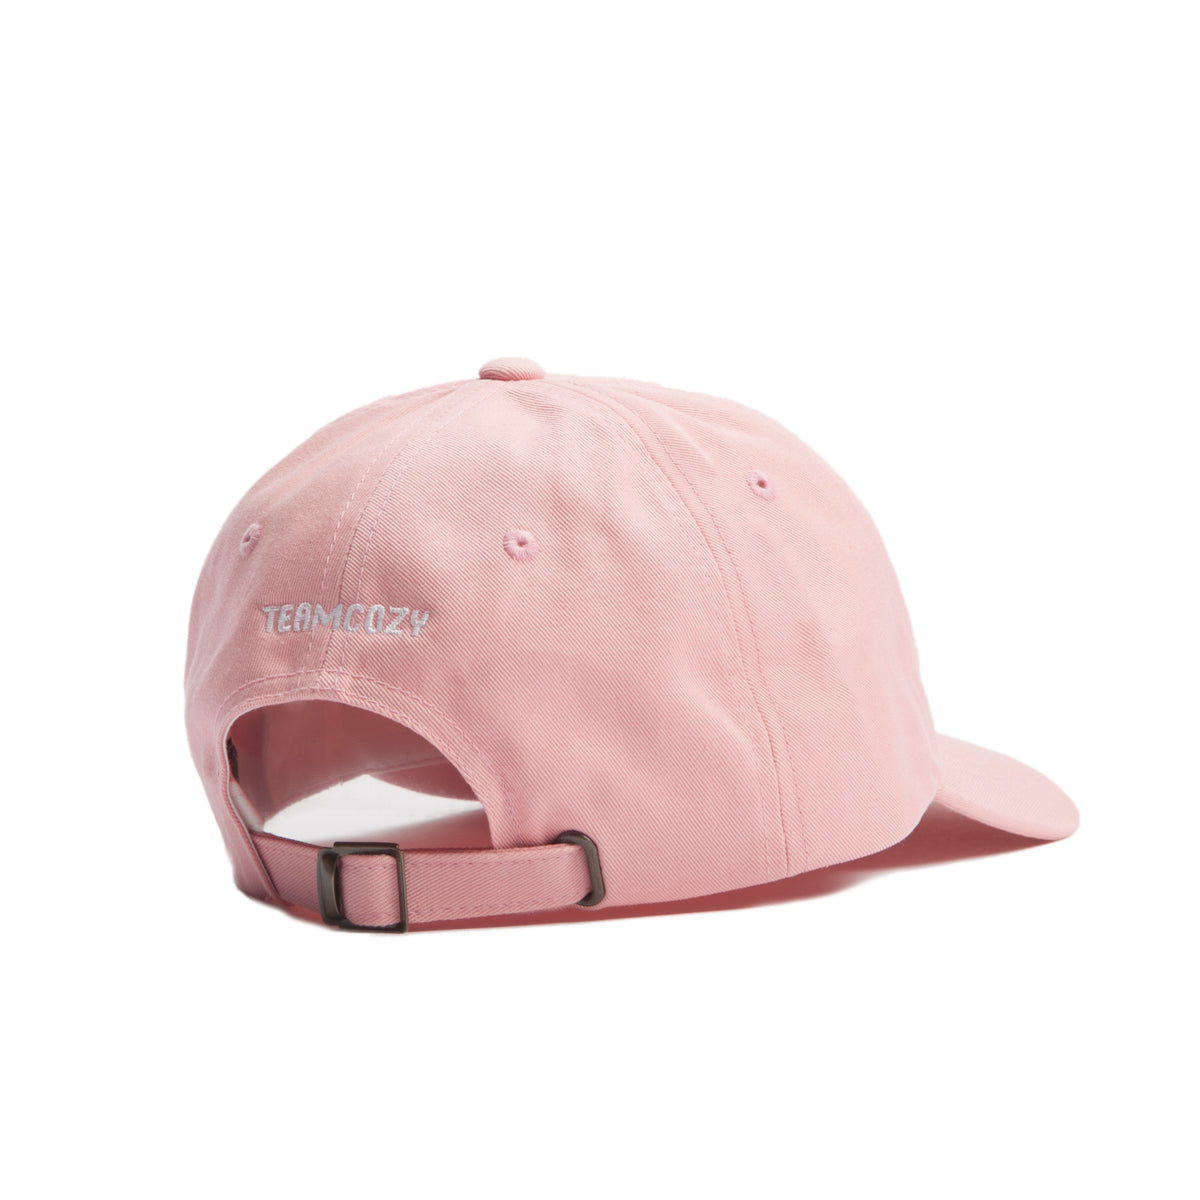 Team Cozy Logo Cap - Pink